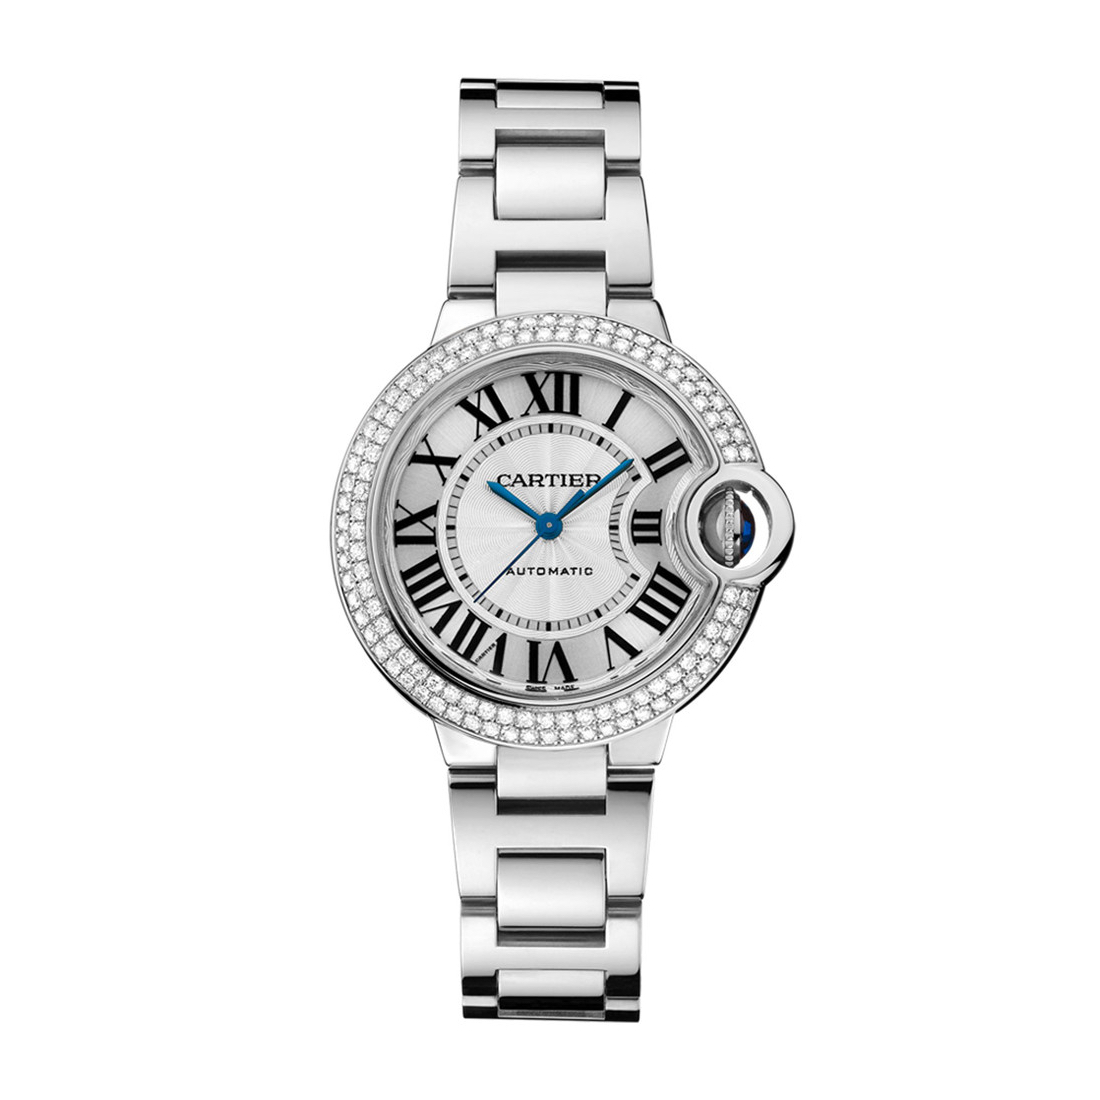 Ballon Bleu de Cartier in White Gold with Diamonds - 33mm - Ladies Watch - WE902065